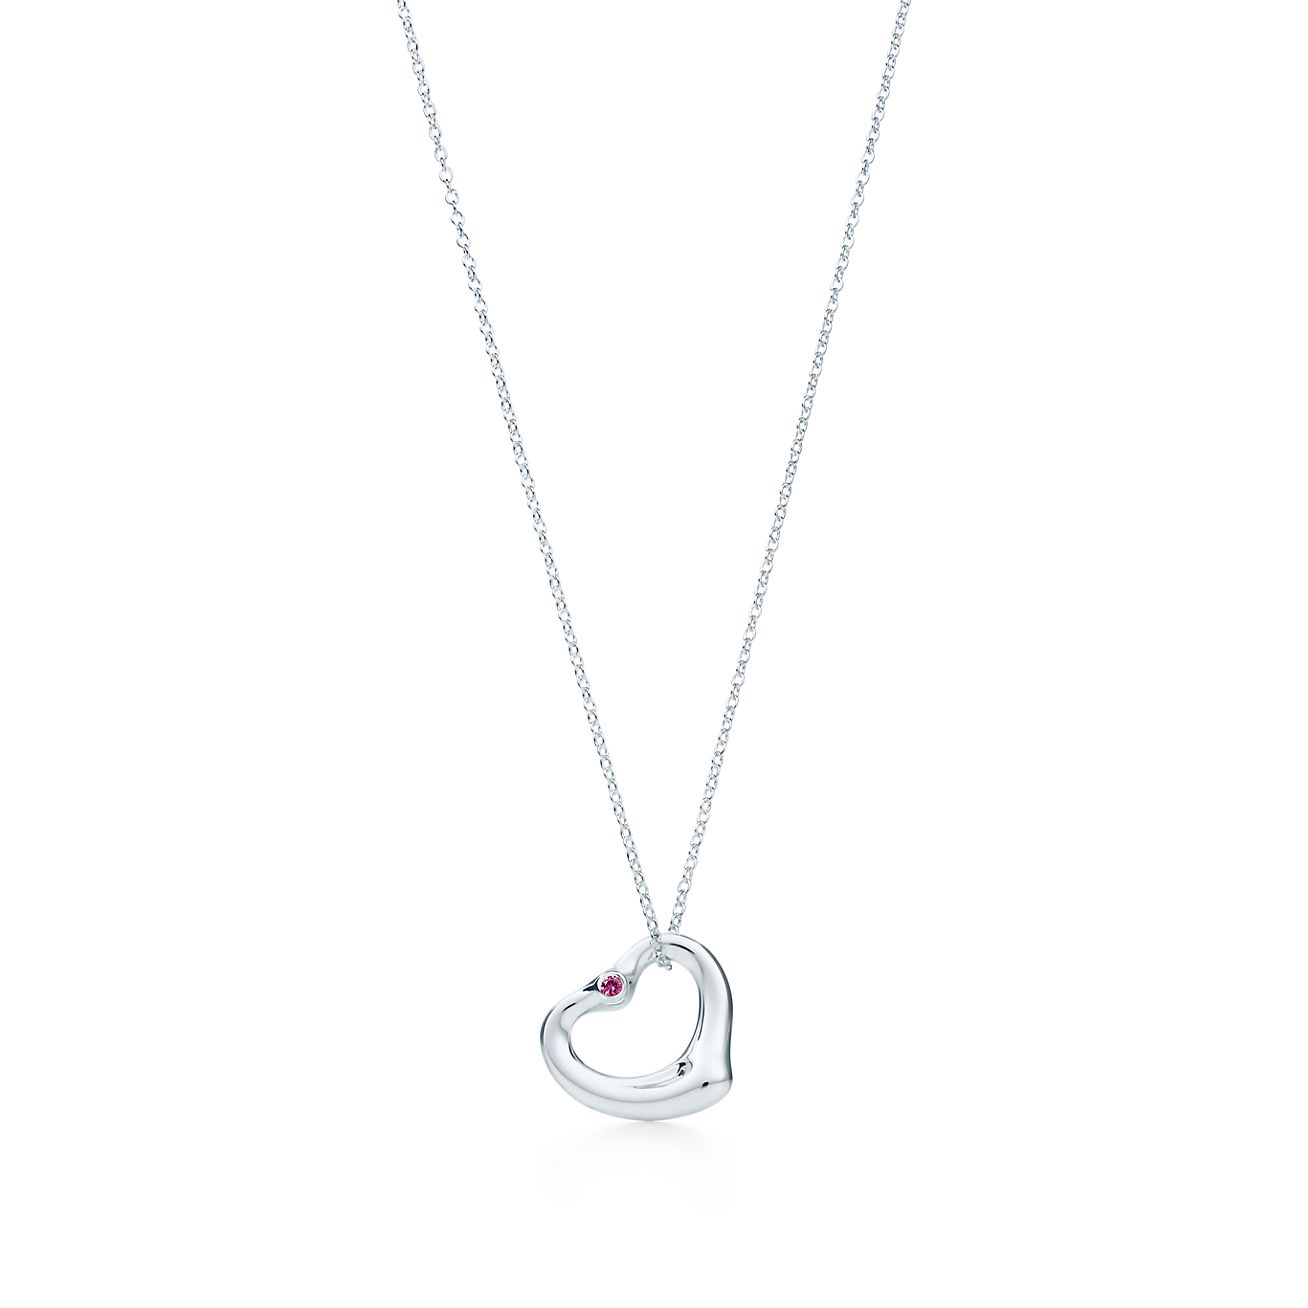 image diamond eternity heart white gold open pendant diamonds chain and